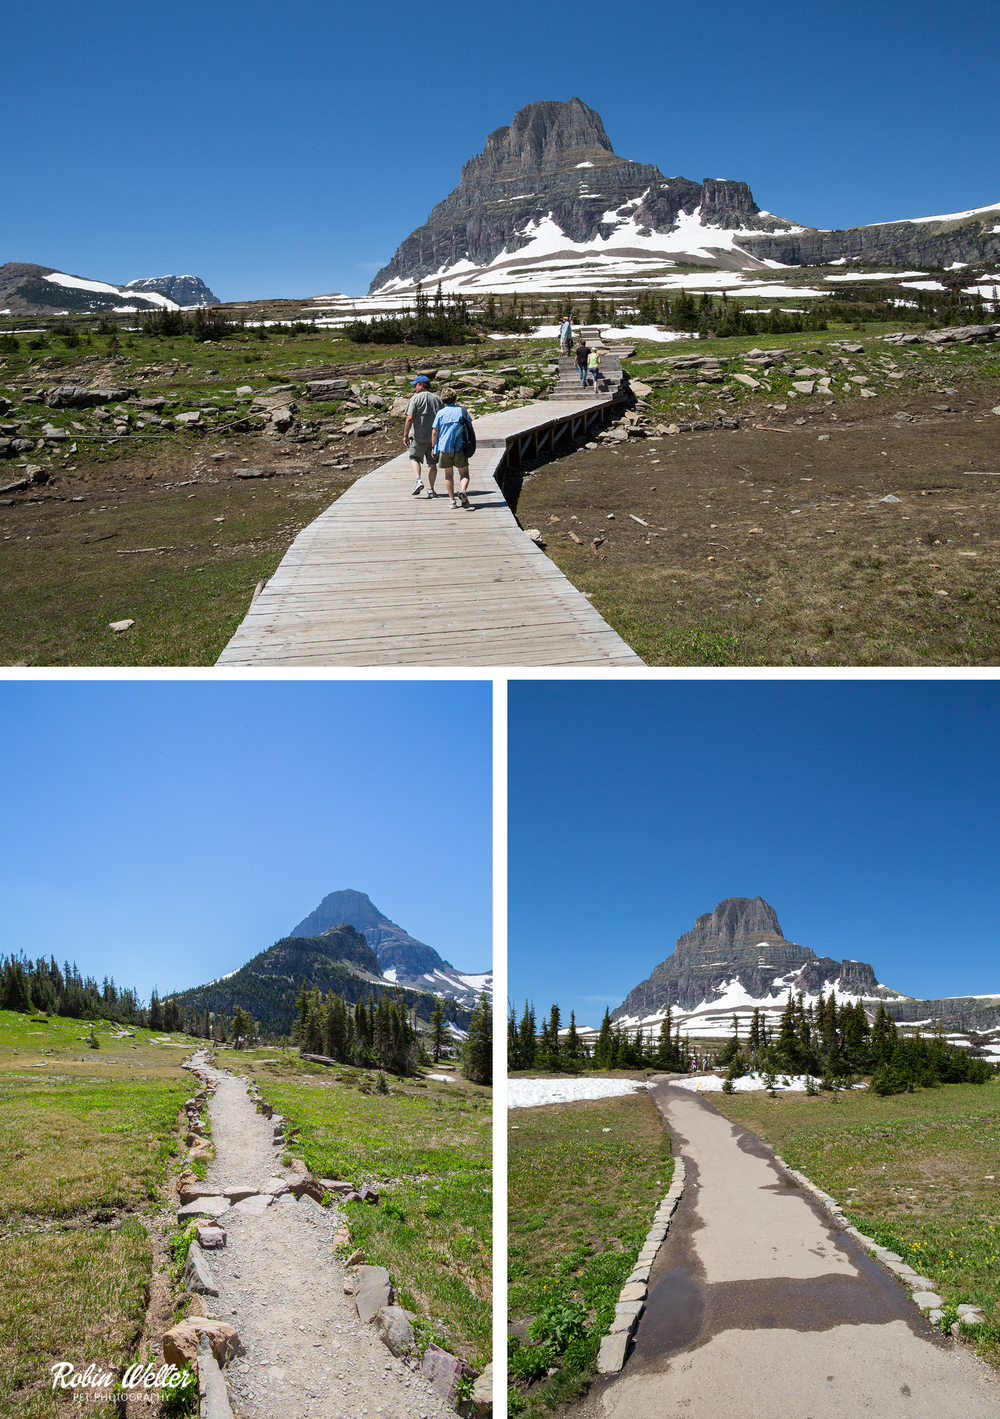 Logan's Pass, Glacier National Park | ©2015 Robin Welter Photography